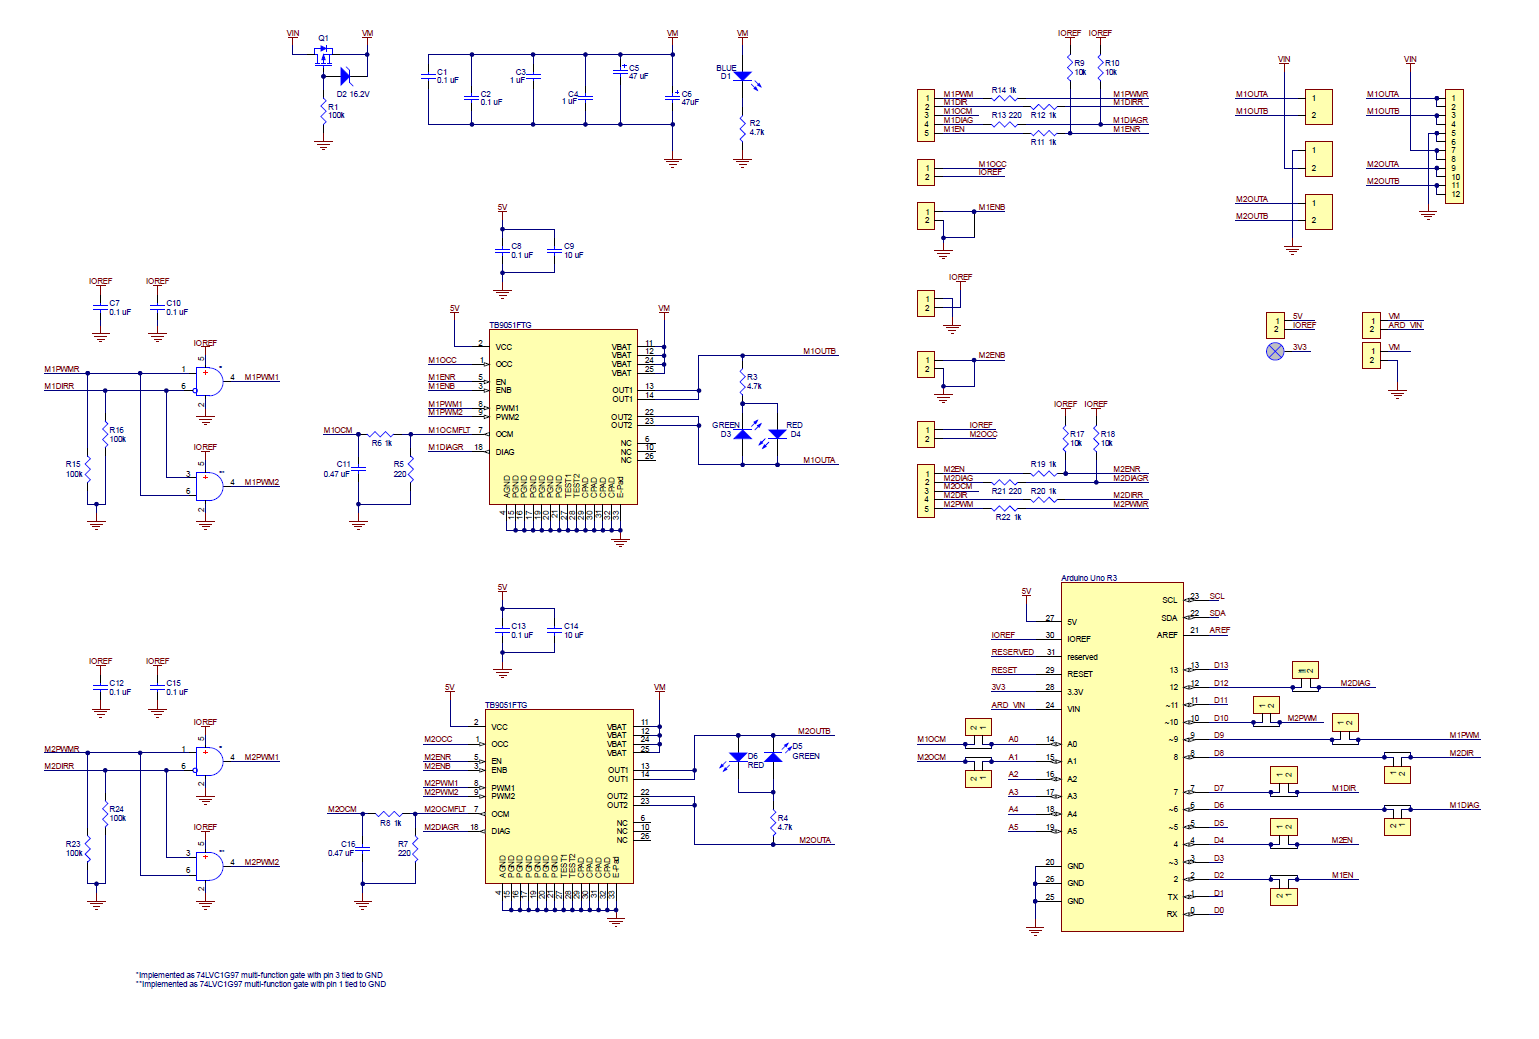 Pololu Dual Tb9051ftg Motor Driver Shield For Arduino Igbt Circuit Diagram Free Download Wiring Schematic This Is Also Available As A Downloadable Pdf 248k